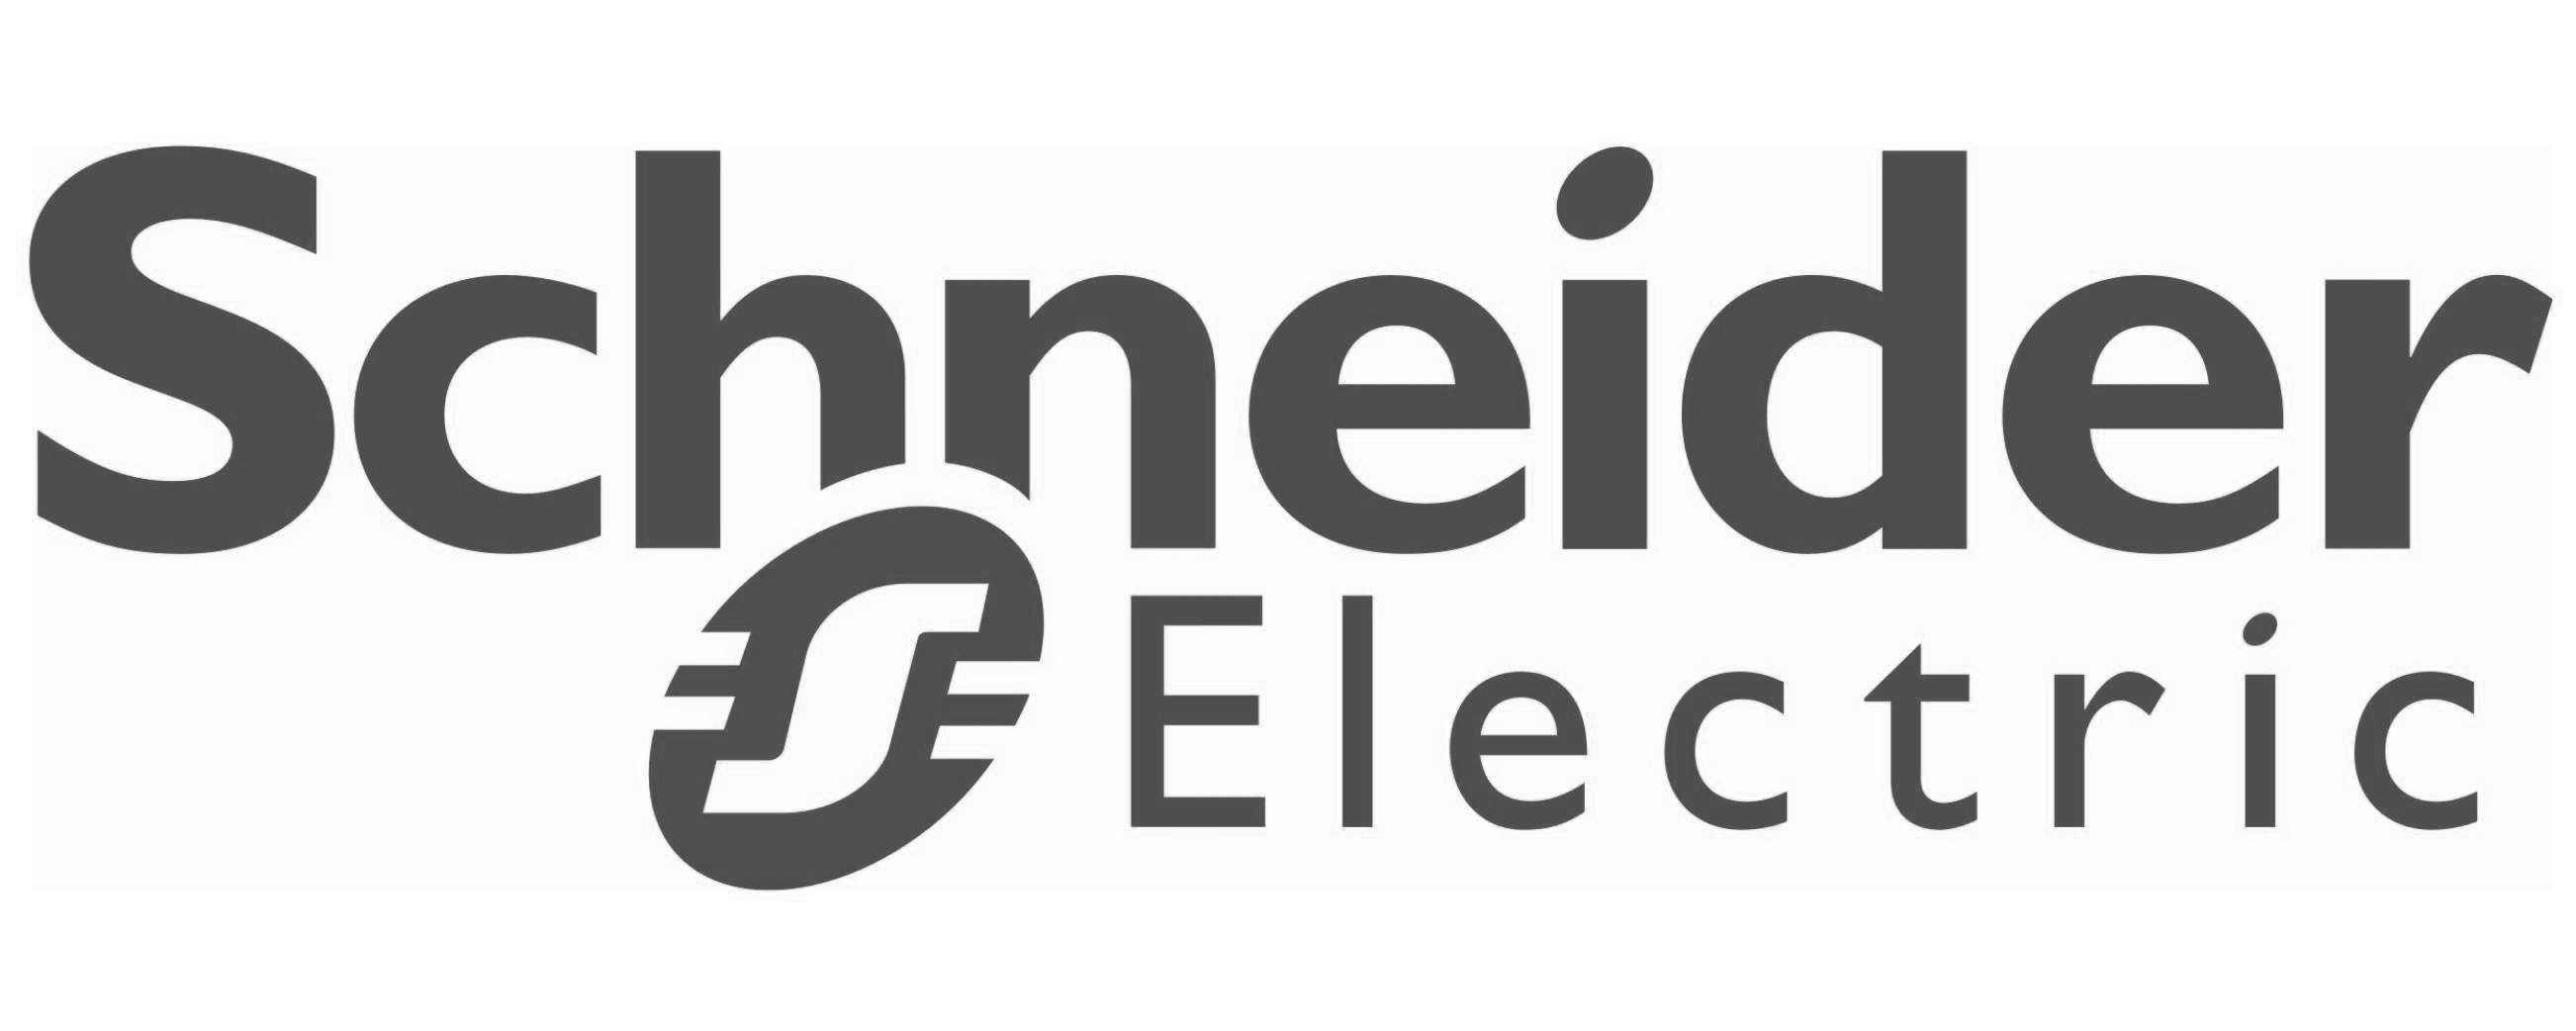 two-cents-schneider-electric-reference